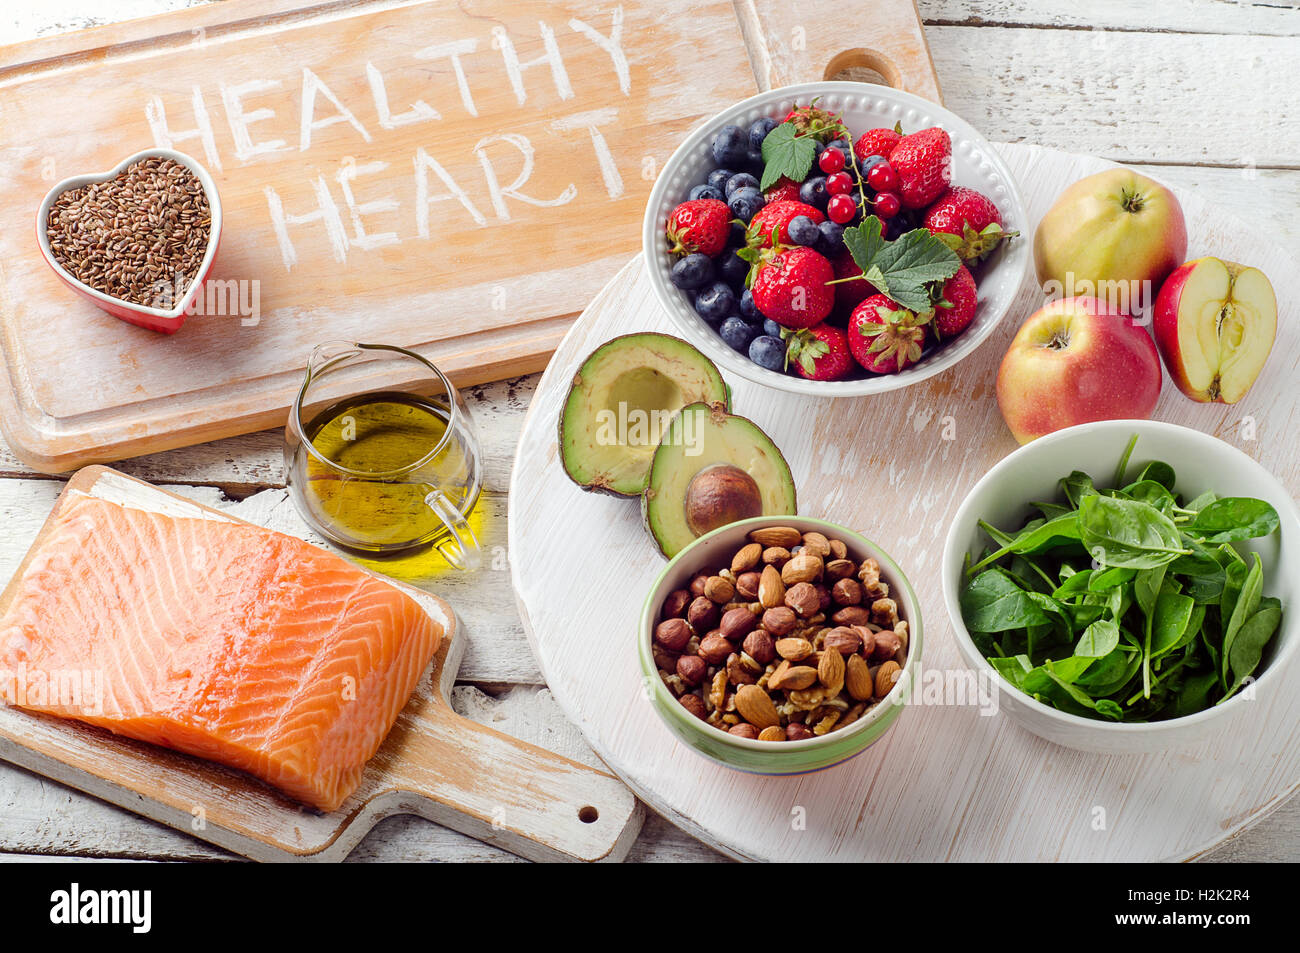 Best Foods For Your Heart Healthy Diet Top View Stock Photo Alamy